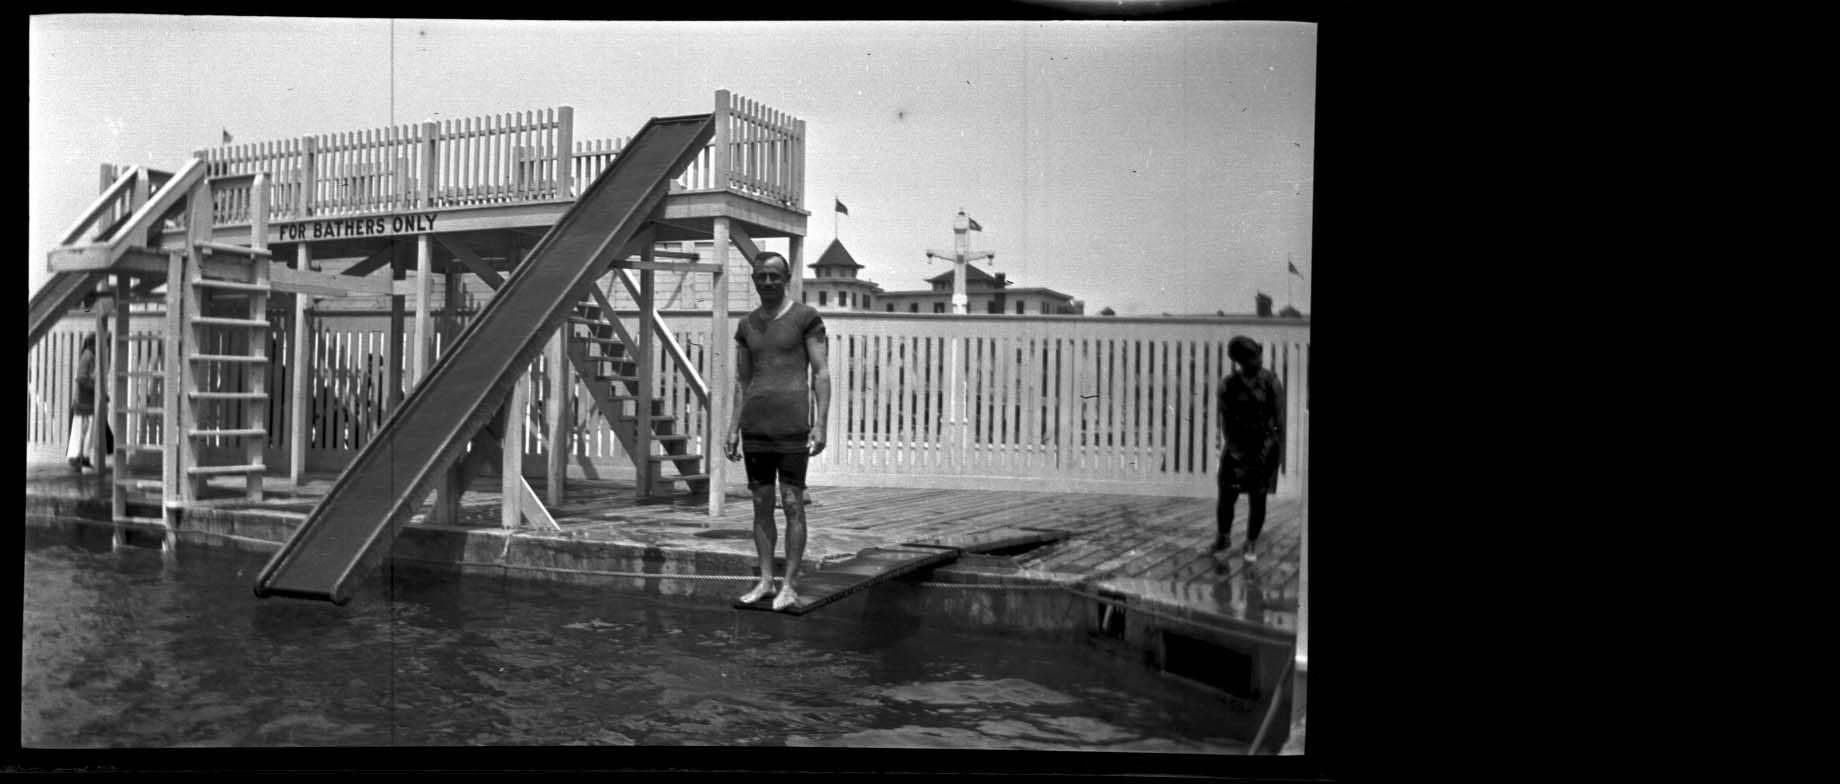 """Summer of 1910.  Man on diving board at swimming pool labeled """"For Bathers Only"""".  From Mr. R.O. Cannons Family Album.  9015 #14426.  Delaware Public Archives.  www.archives.delaware.gov"""